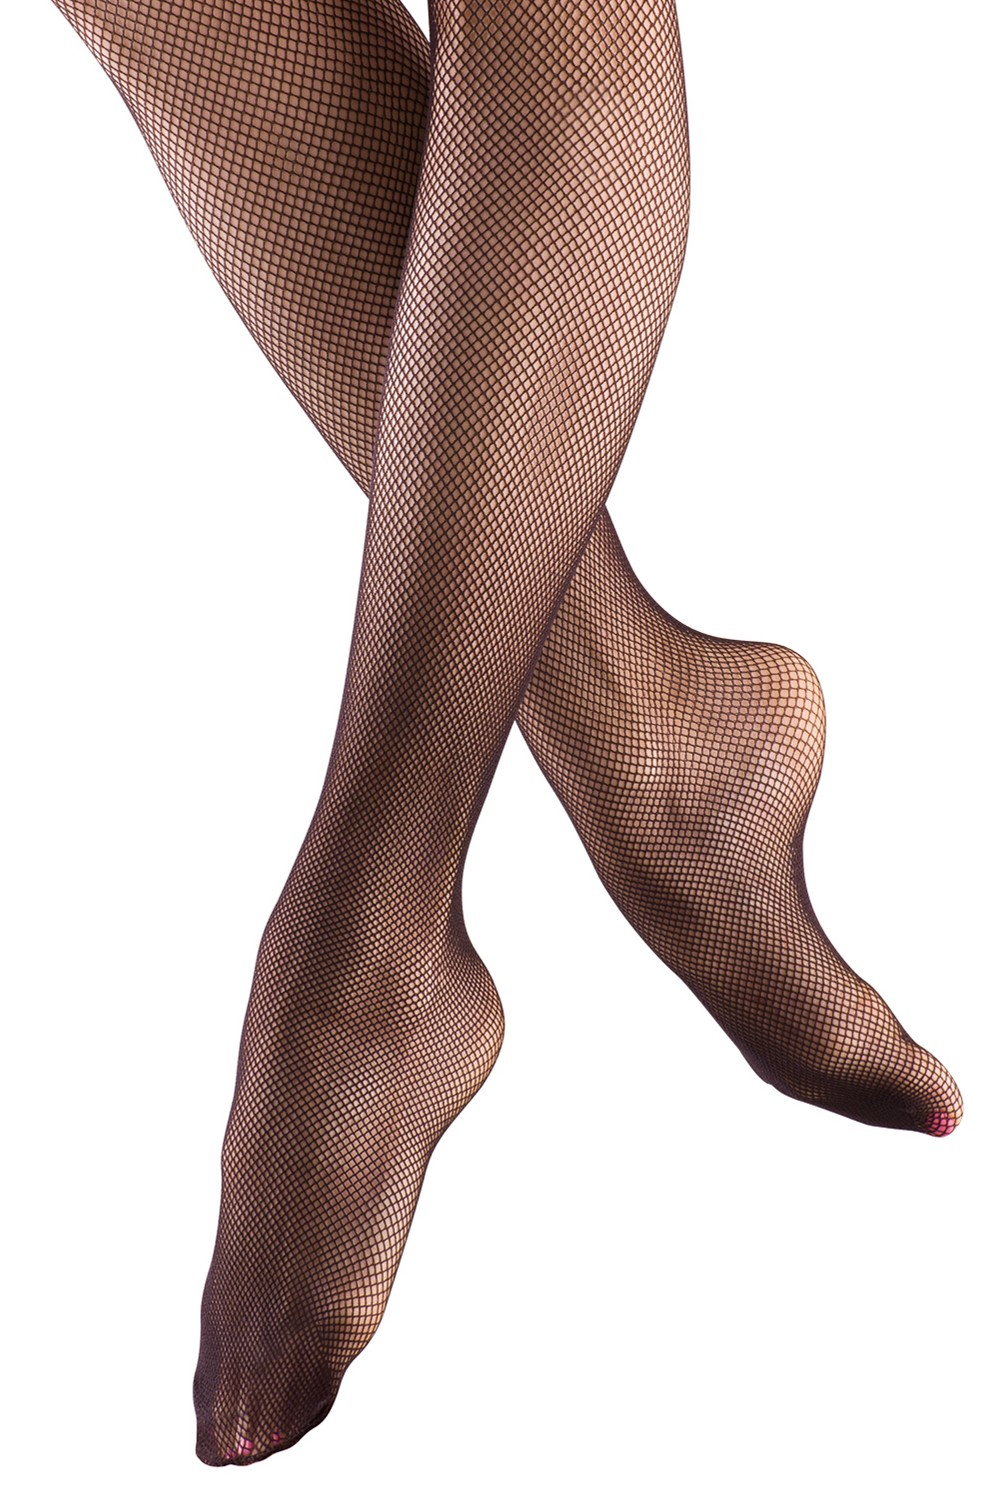 Collant A Rete Bambina Children's Dance Tights